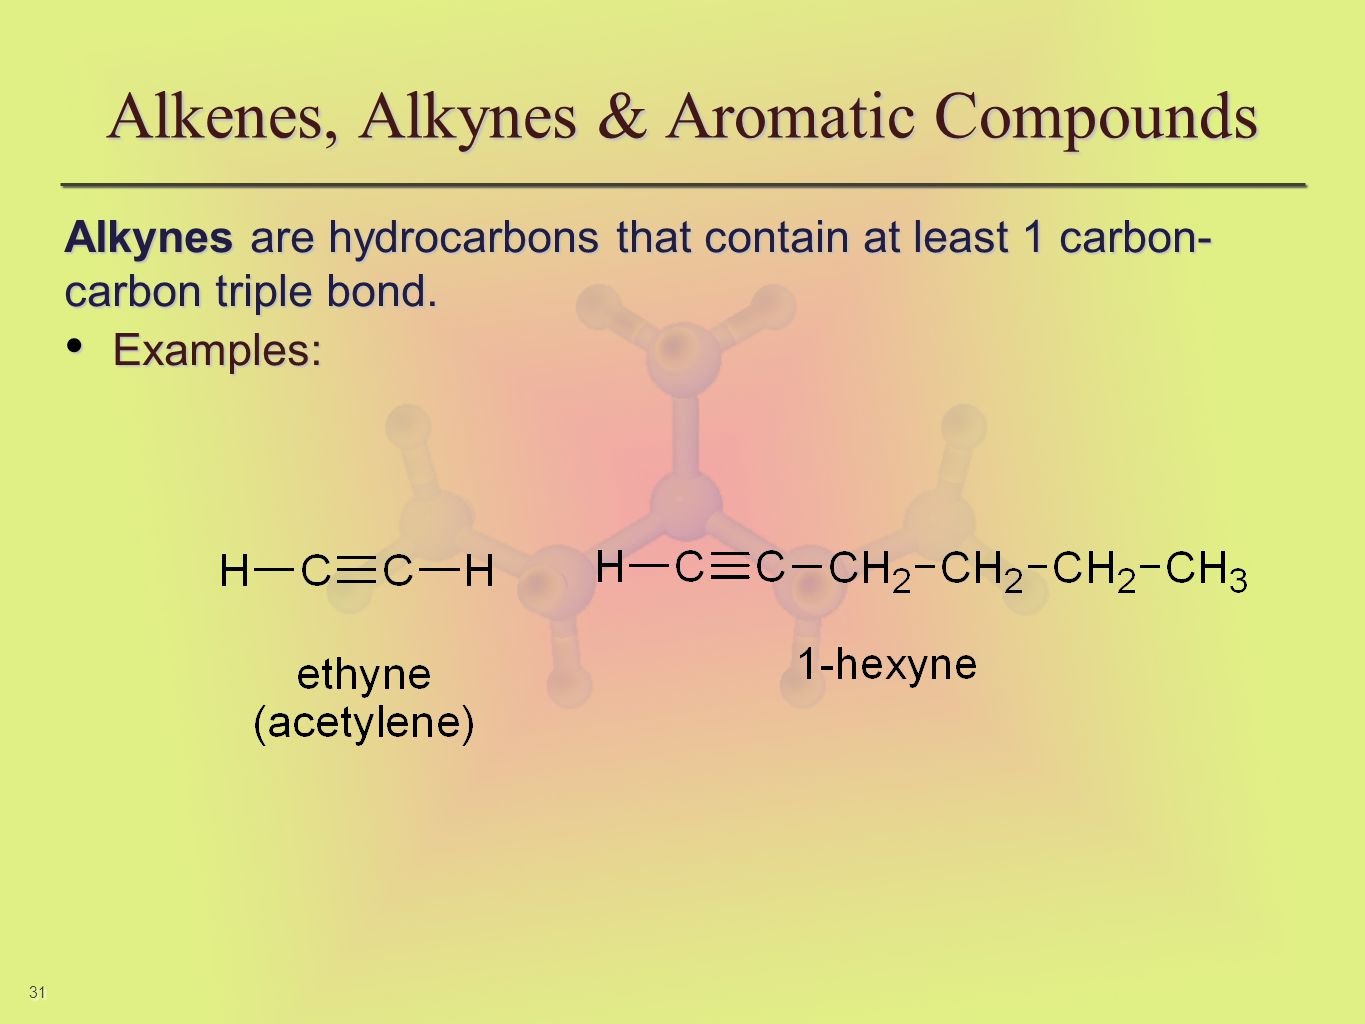 31 Alkenes, Alkynes & Aromatic Compounds Alkynes are hydrocarbons that contain at least 1 carbon- carbon triple bond. Examples: Examples: